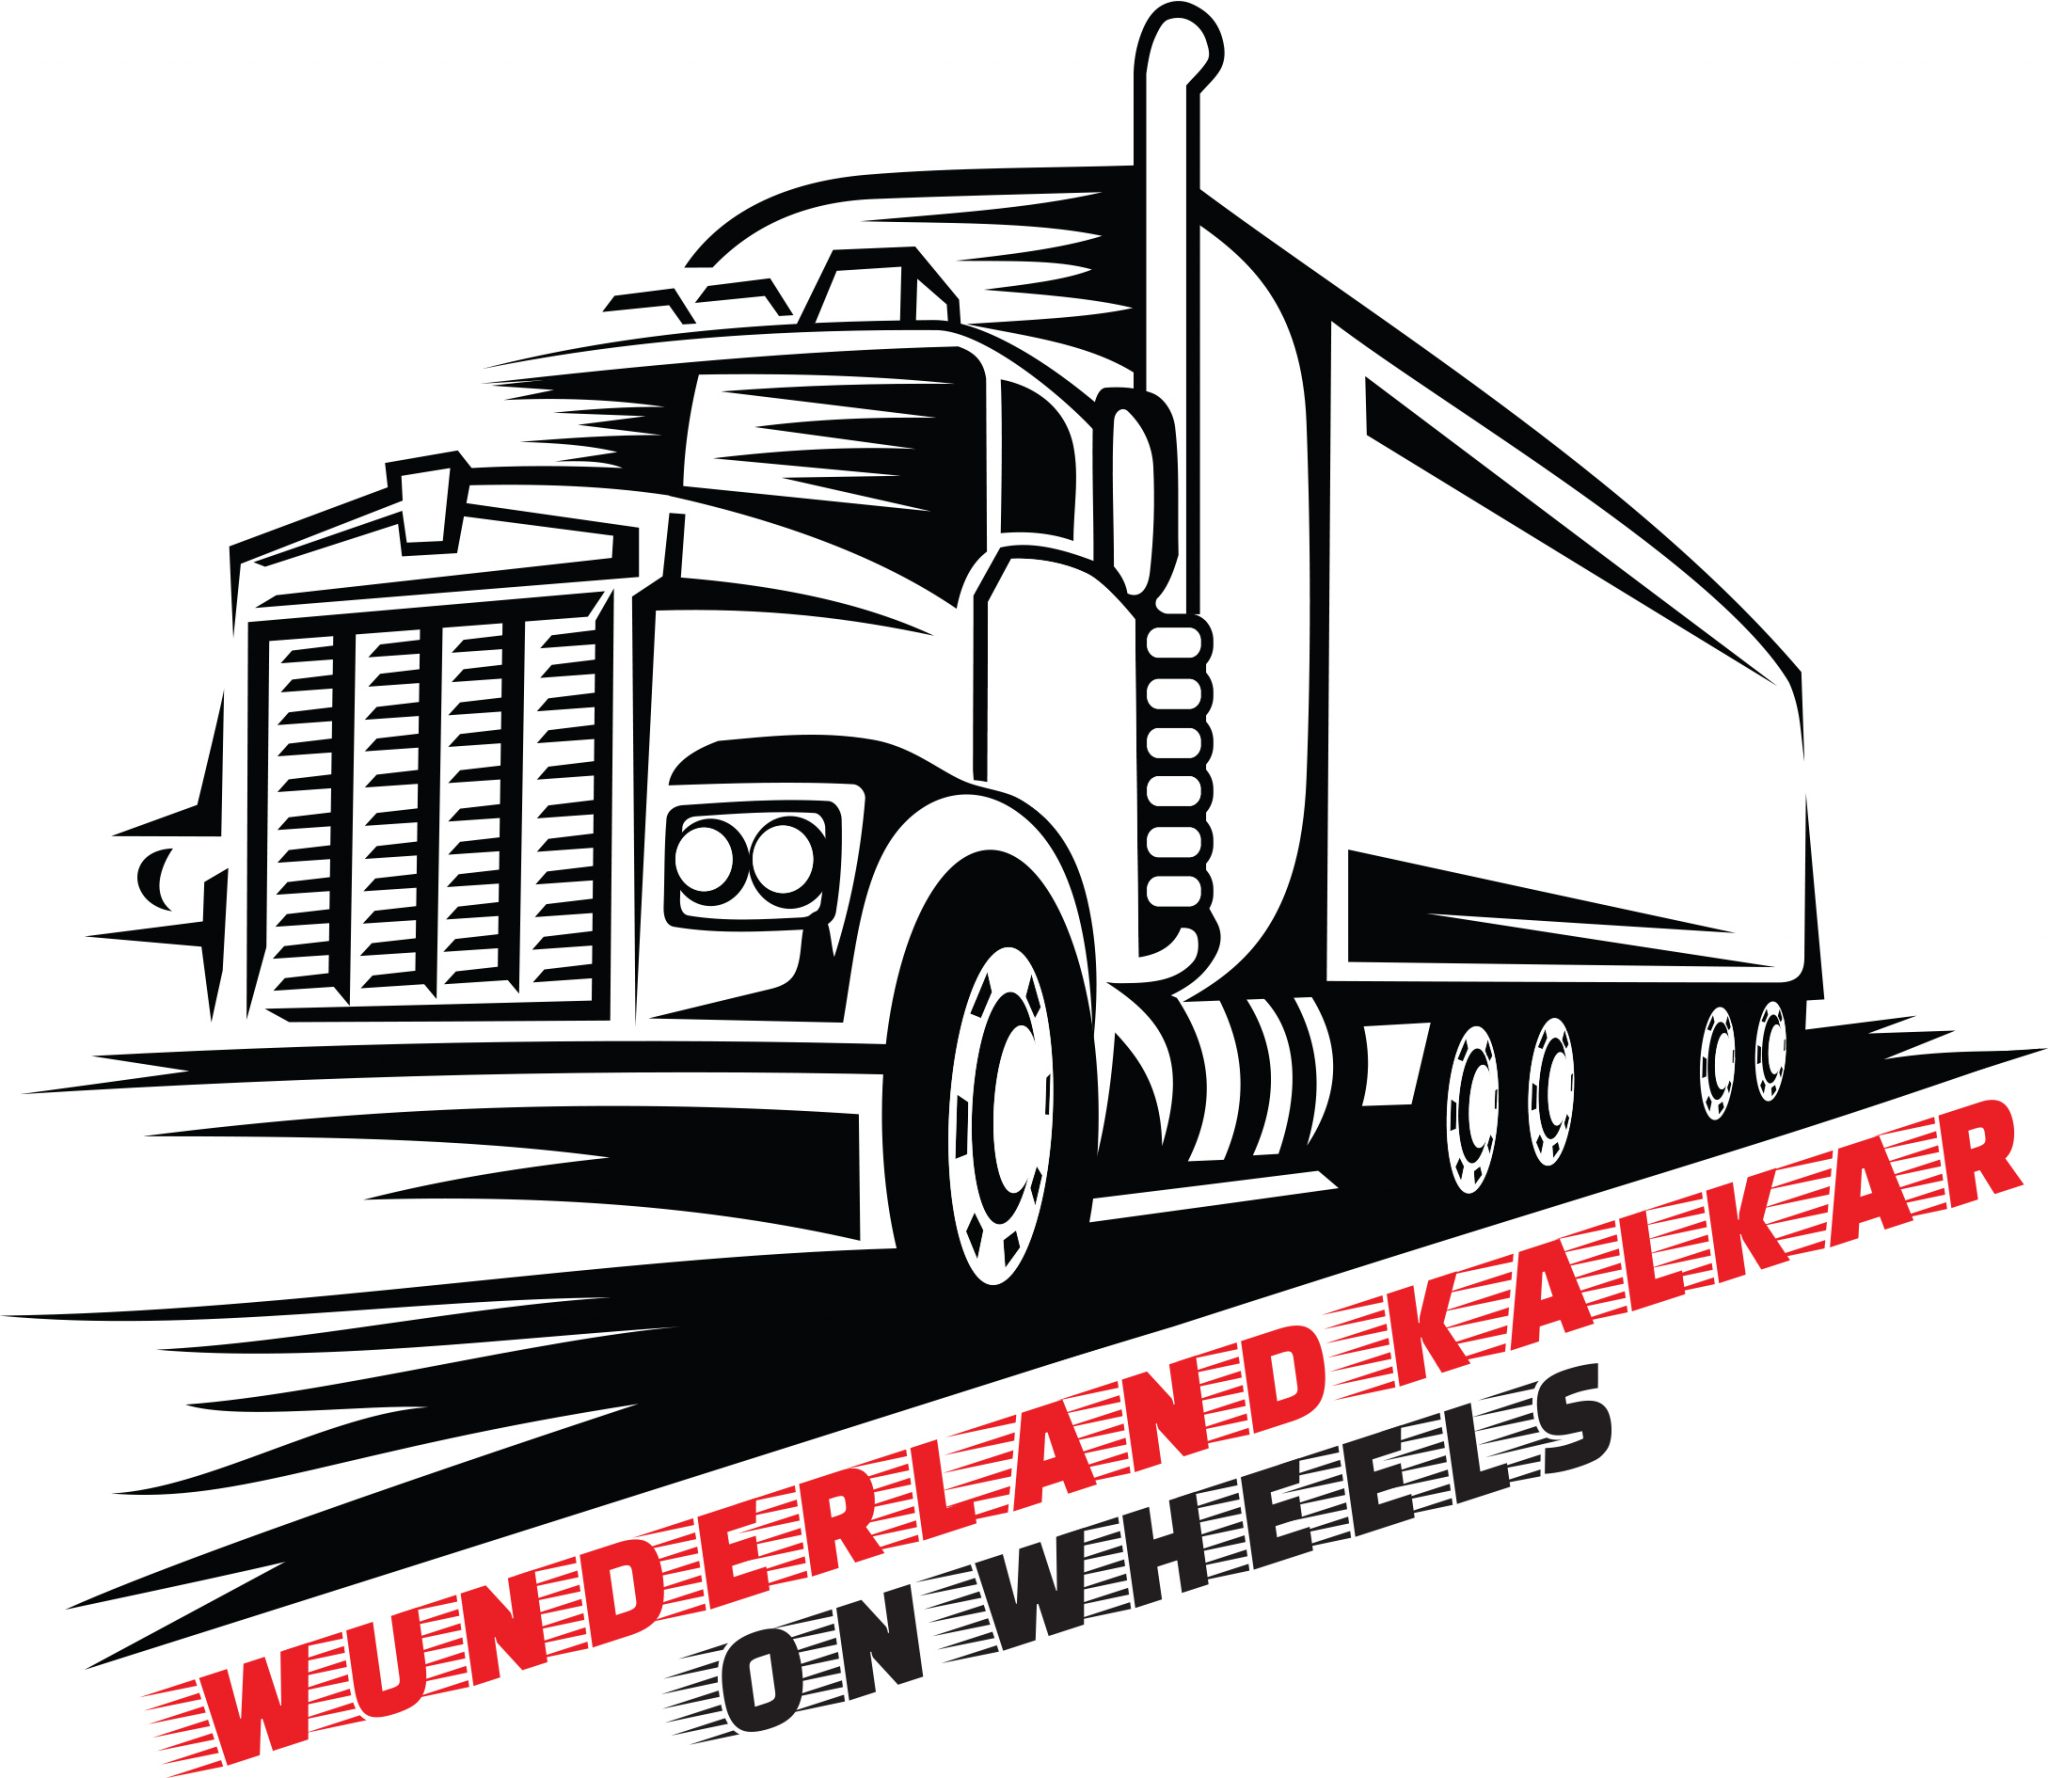 Wunderland Kalkar On Wheels 2018